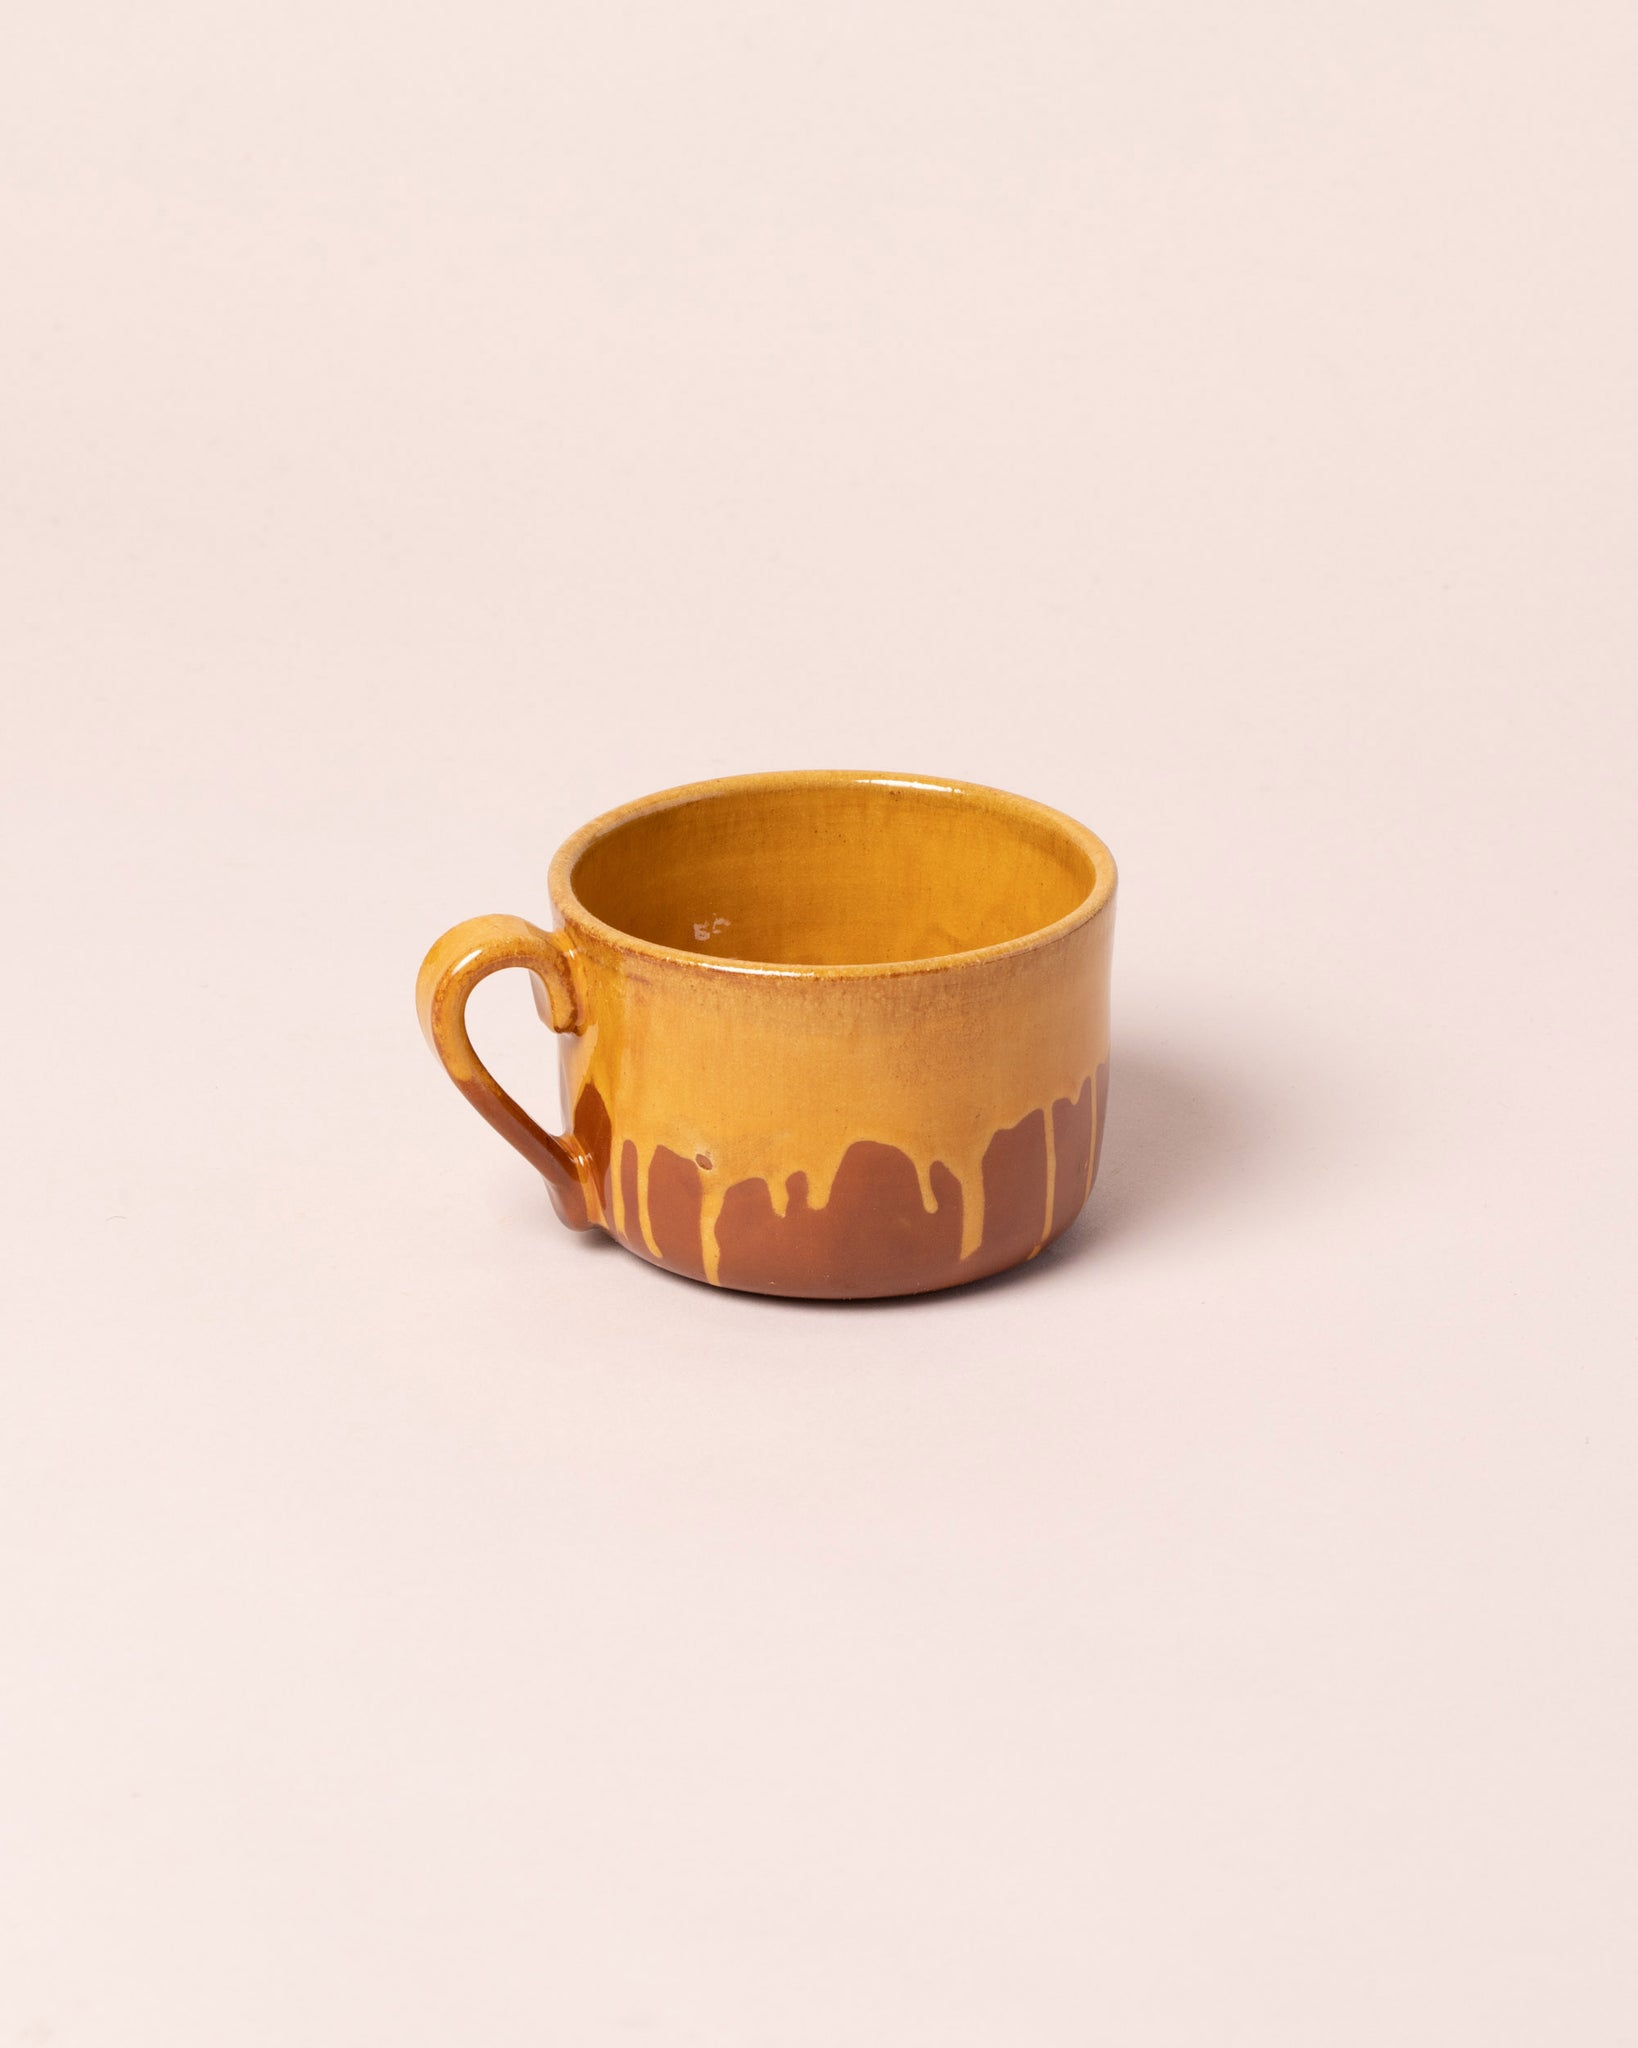 La Ceramica Tea Mug Caramel Yellow